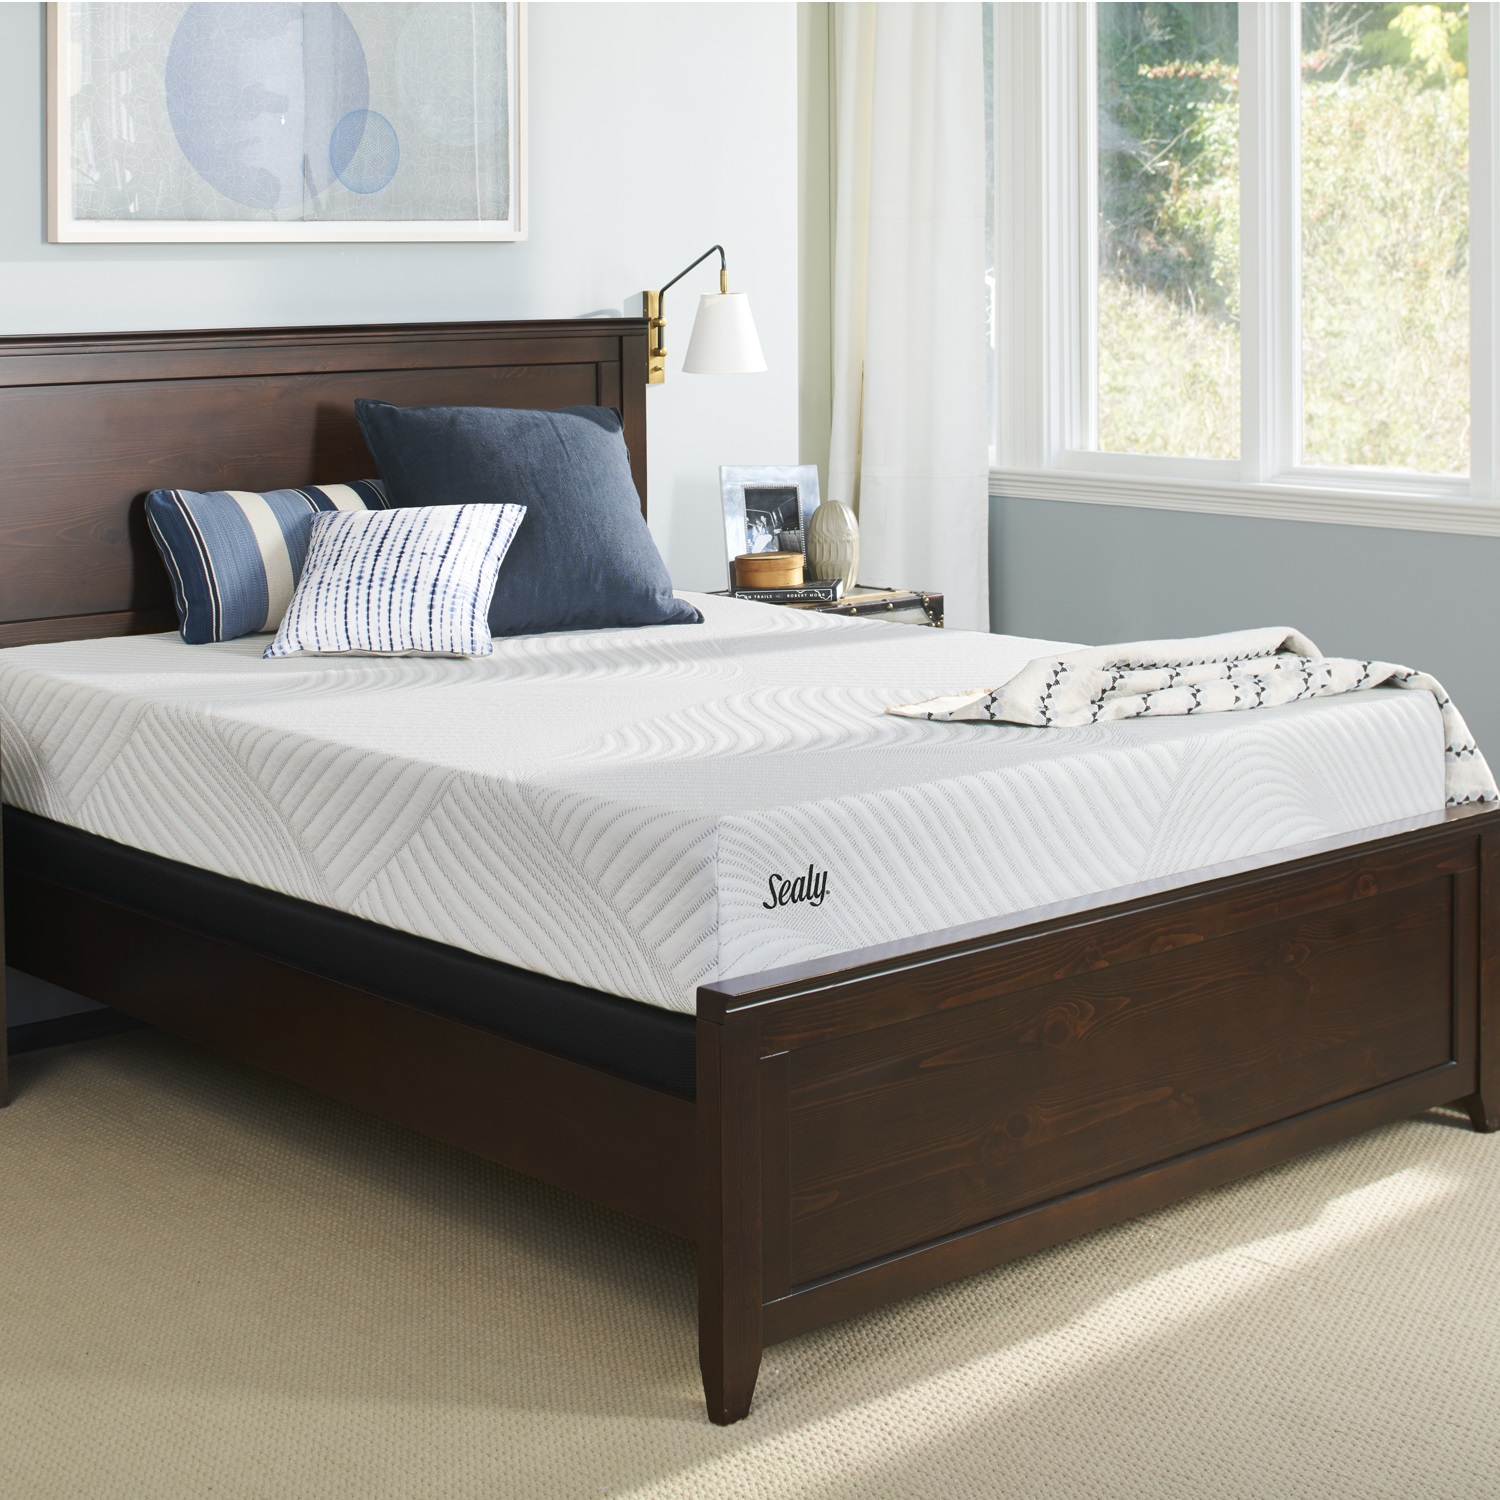 Sealy Conform Essentials 11.5 Inch Plush Memory Foam Mattress